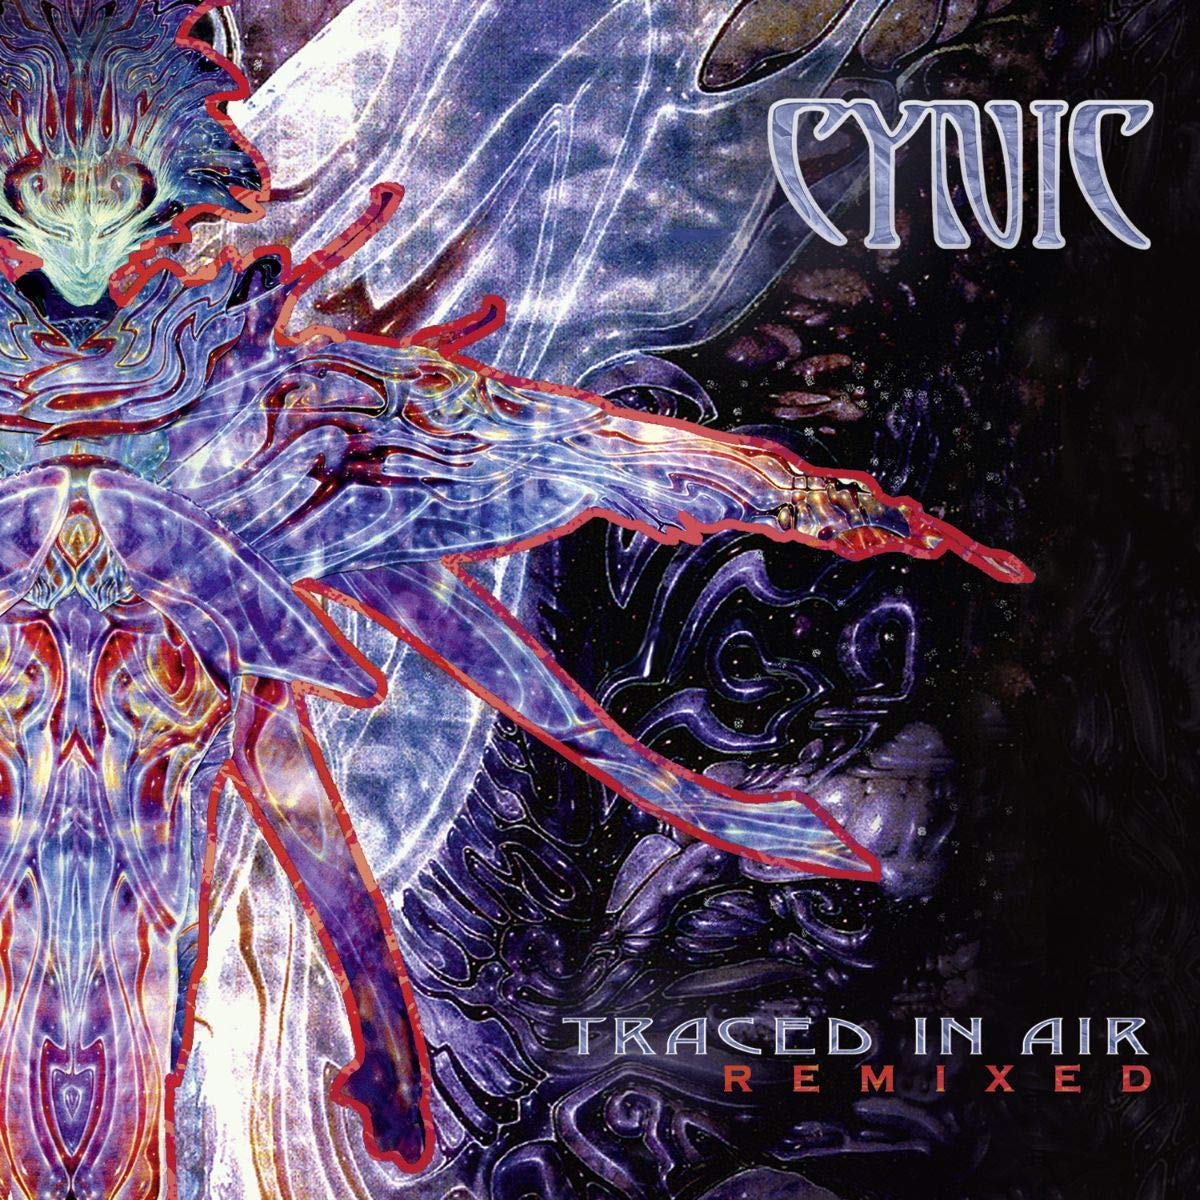 Cynic - Traced In Air (Remixed) [Import LP]